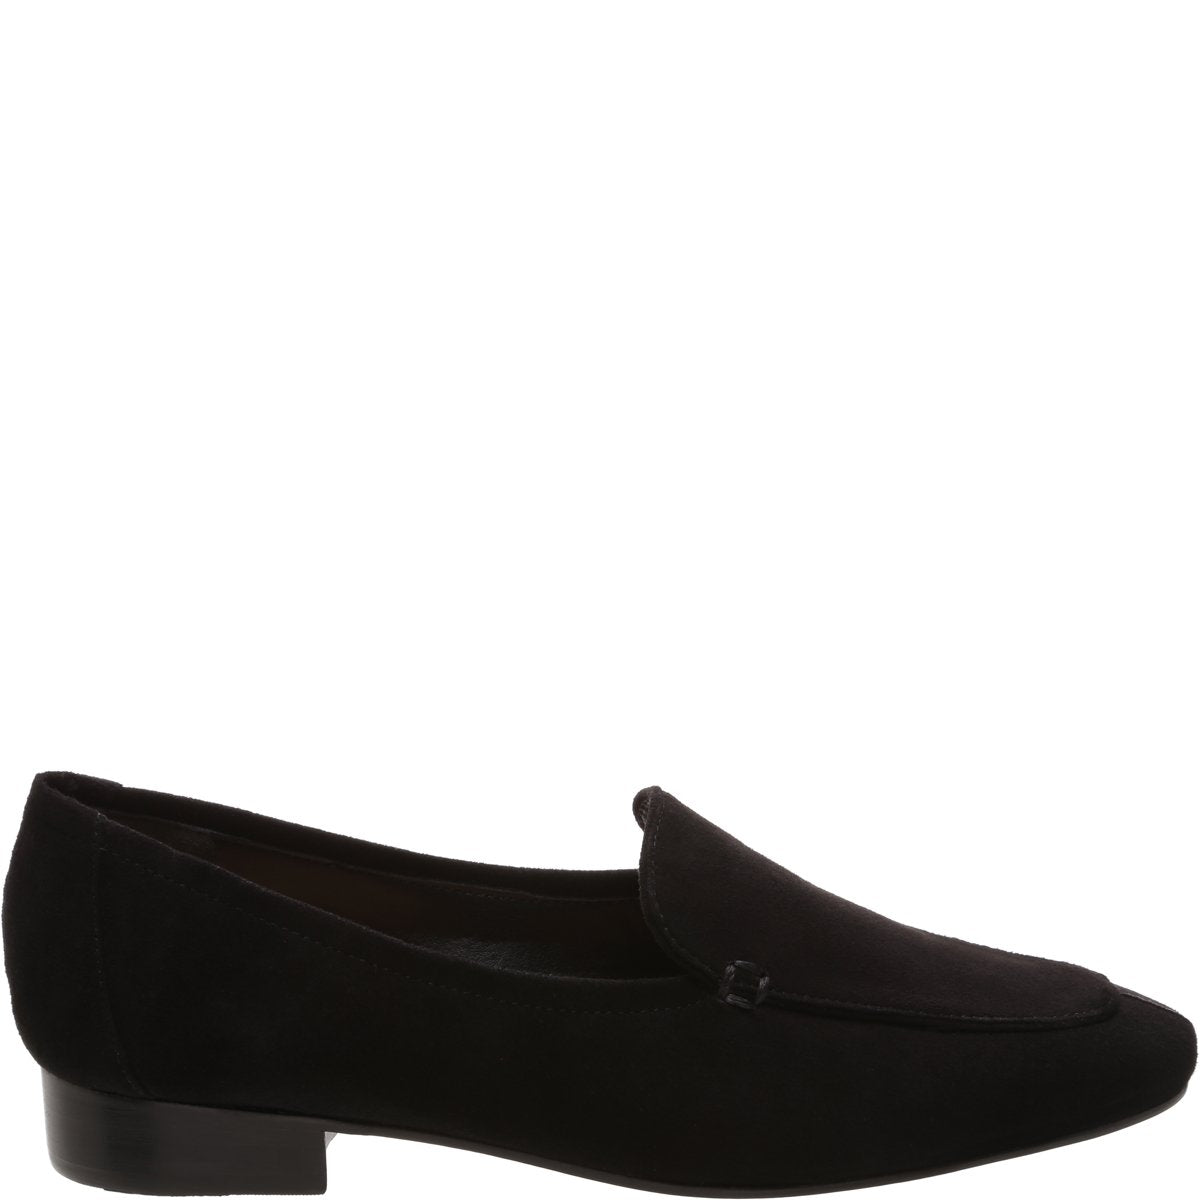 Shania Loafer Flat - Black Suede